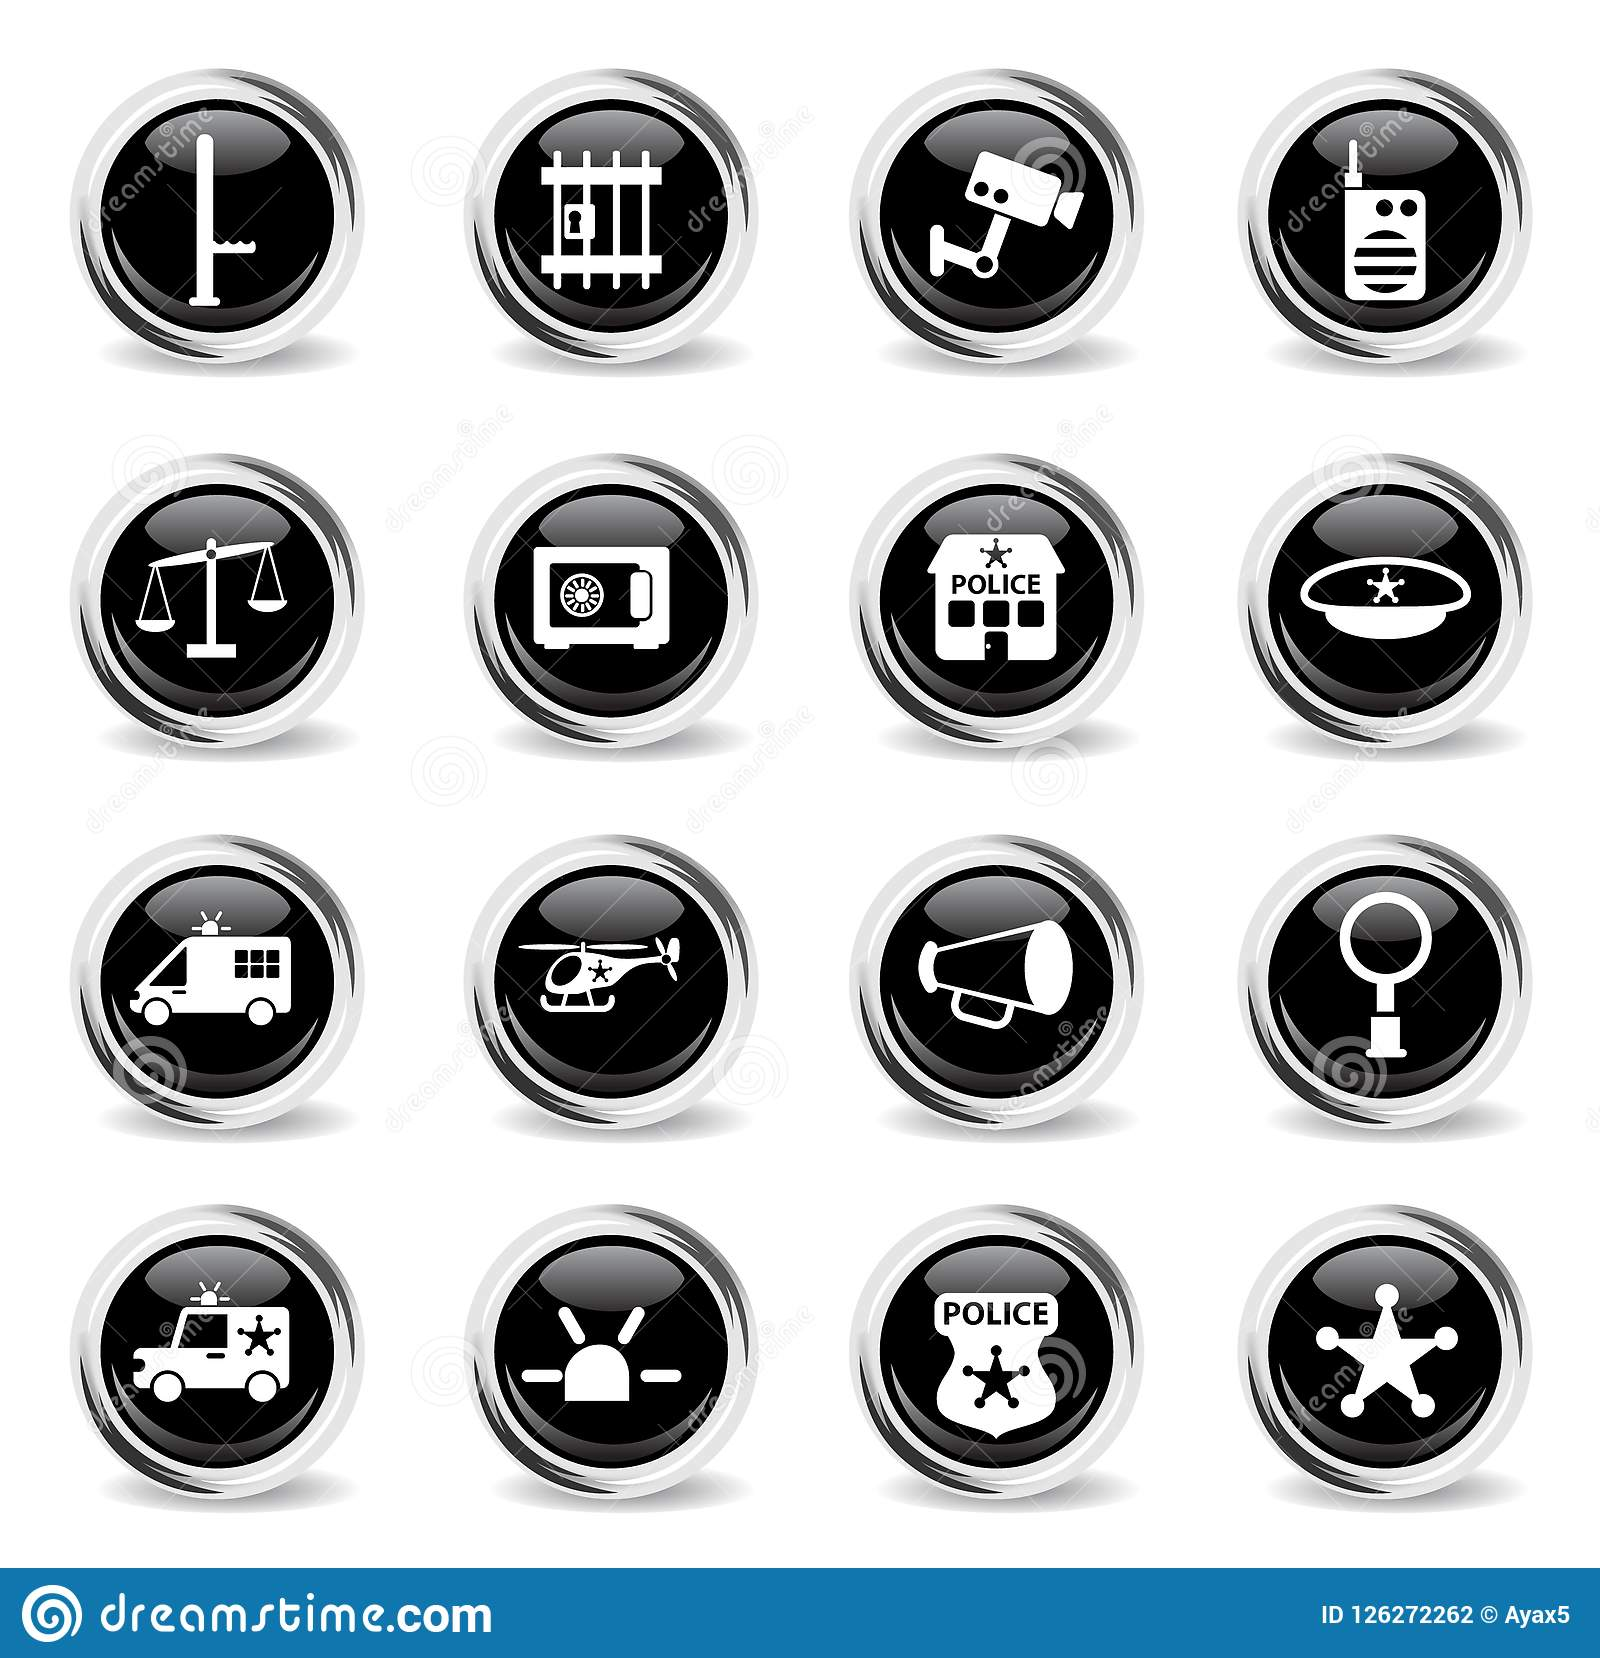 Police department icon set stock vector  Illustration of